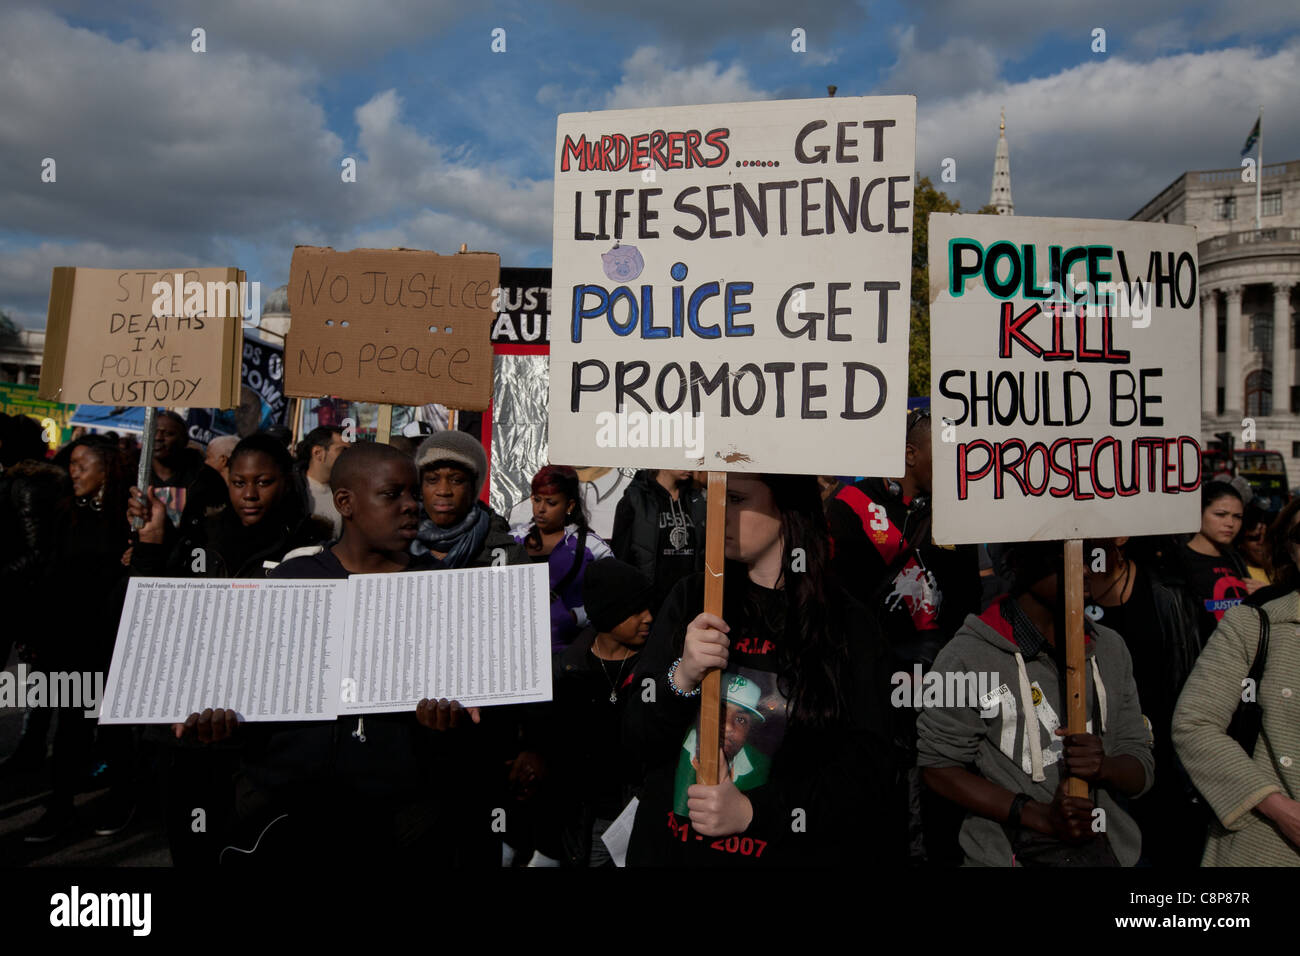 London, UK, 29/10/2011. NCAPV Protesters marching to Downing St holding banners with slogans against the police. - Stock Image